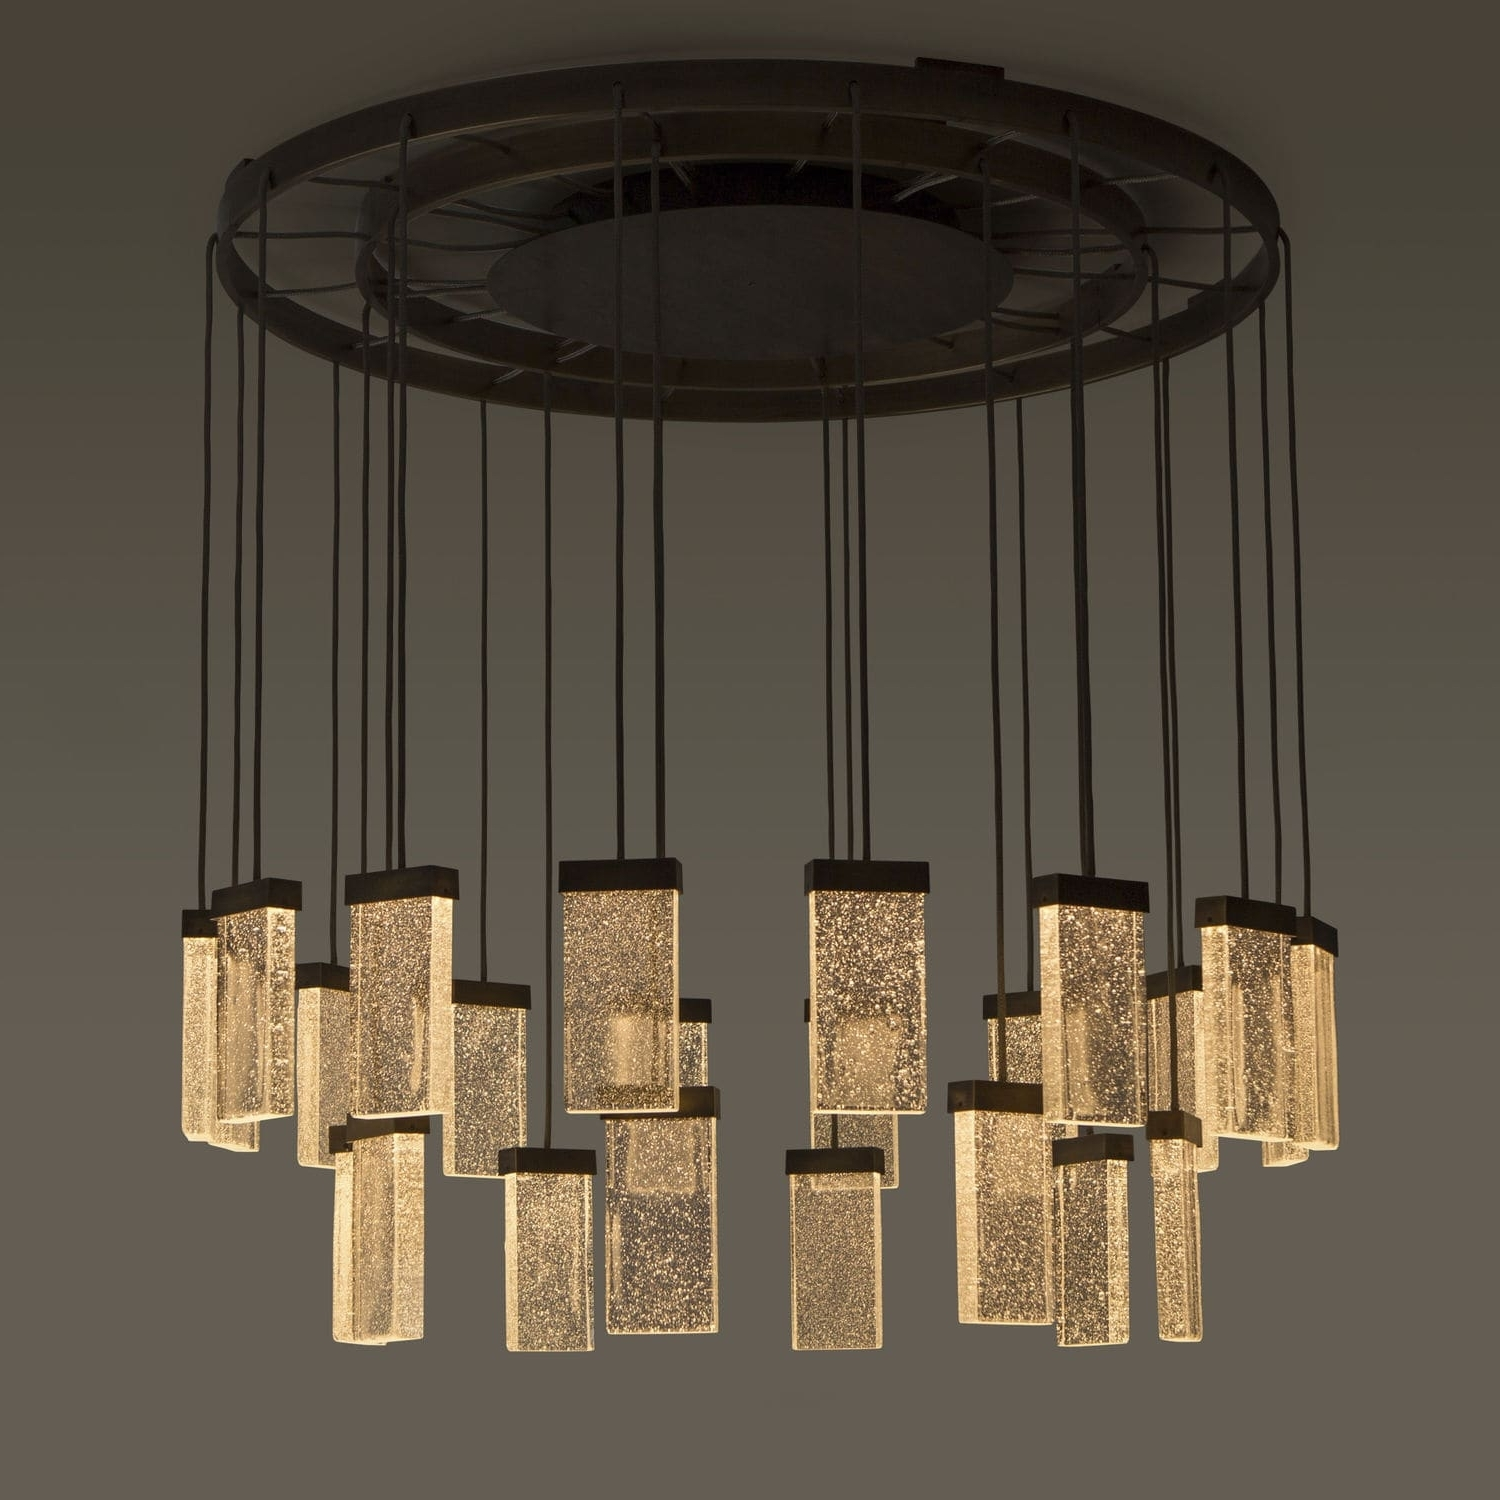 Contemporary Chandelier Throughout Well Known Contemporary Chandelier / Glass / Aluminum / Led – 24 Grand Cru (View 5 of 20)